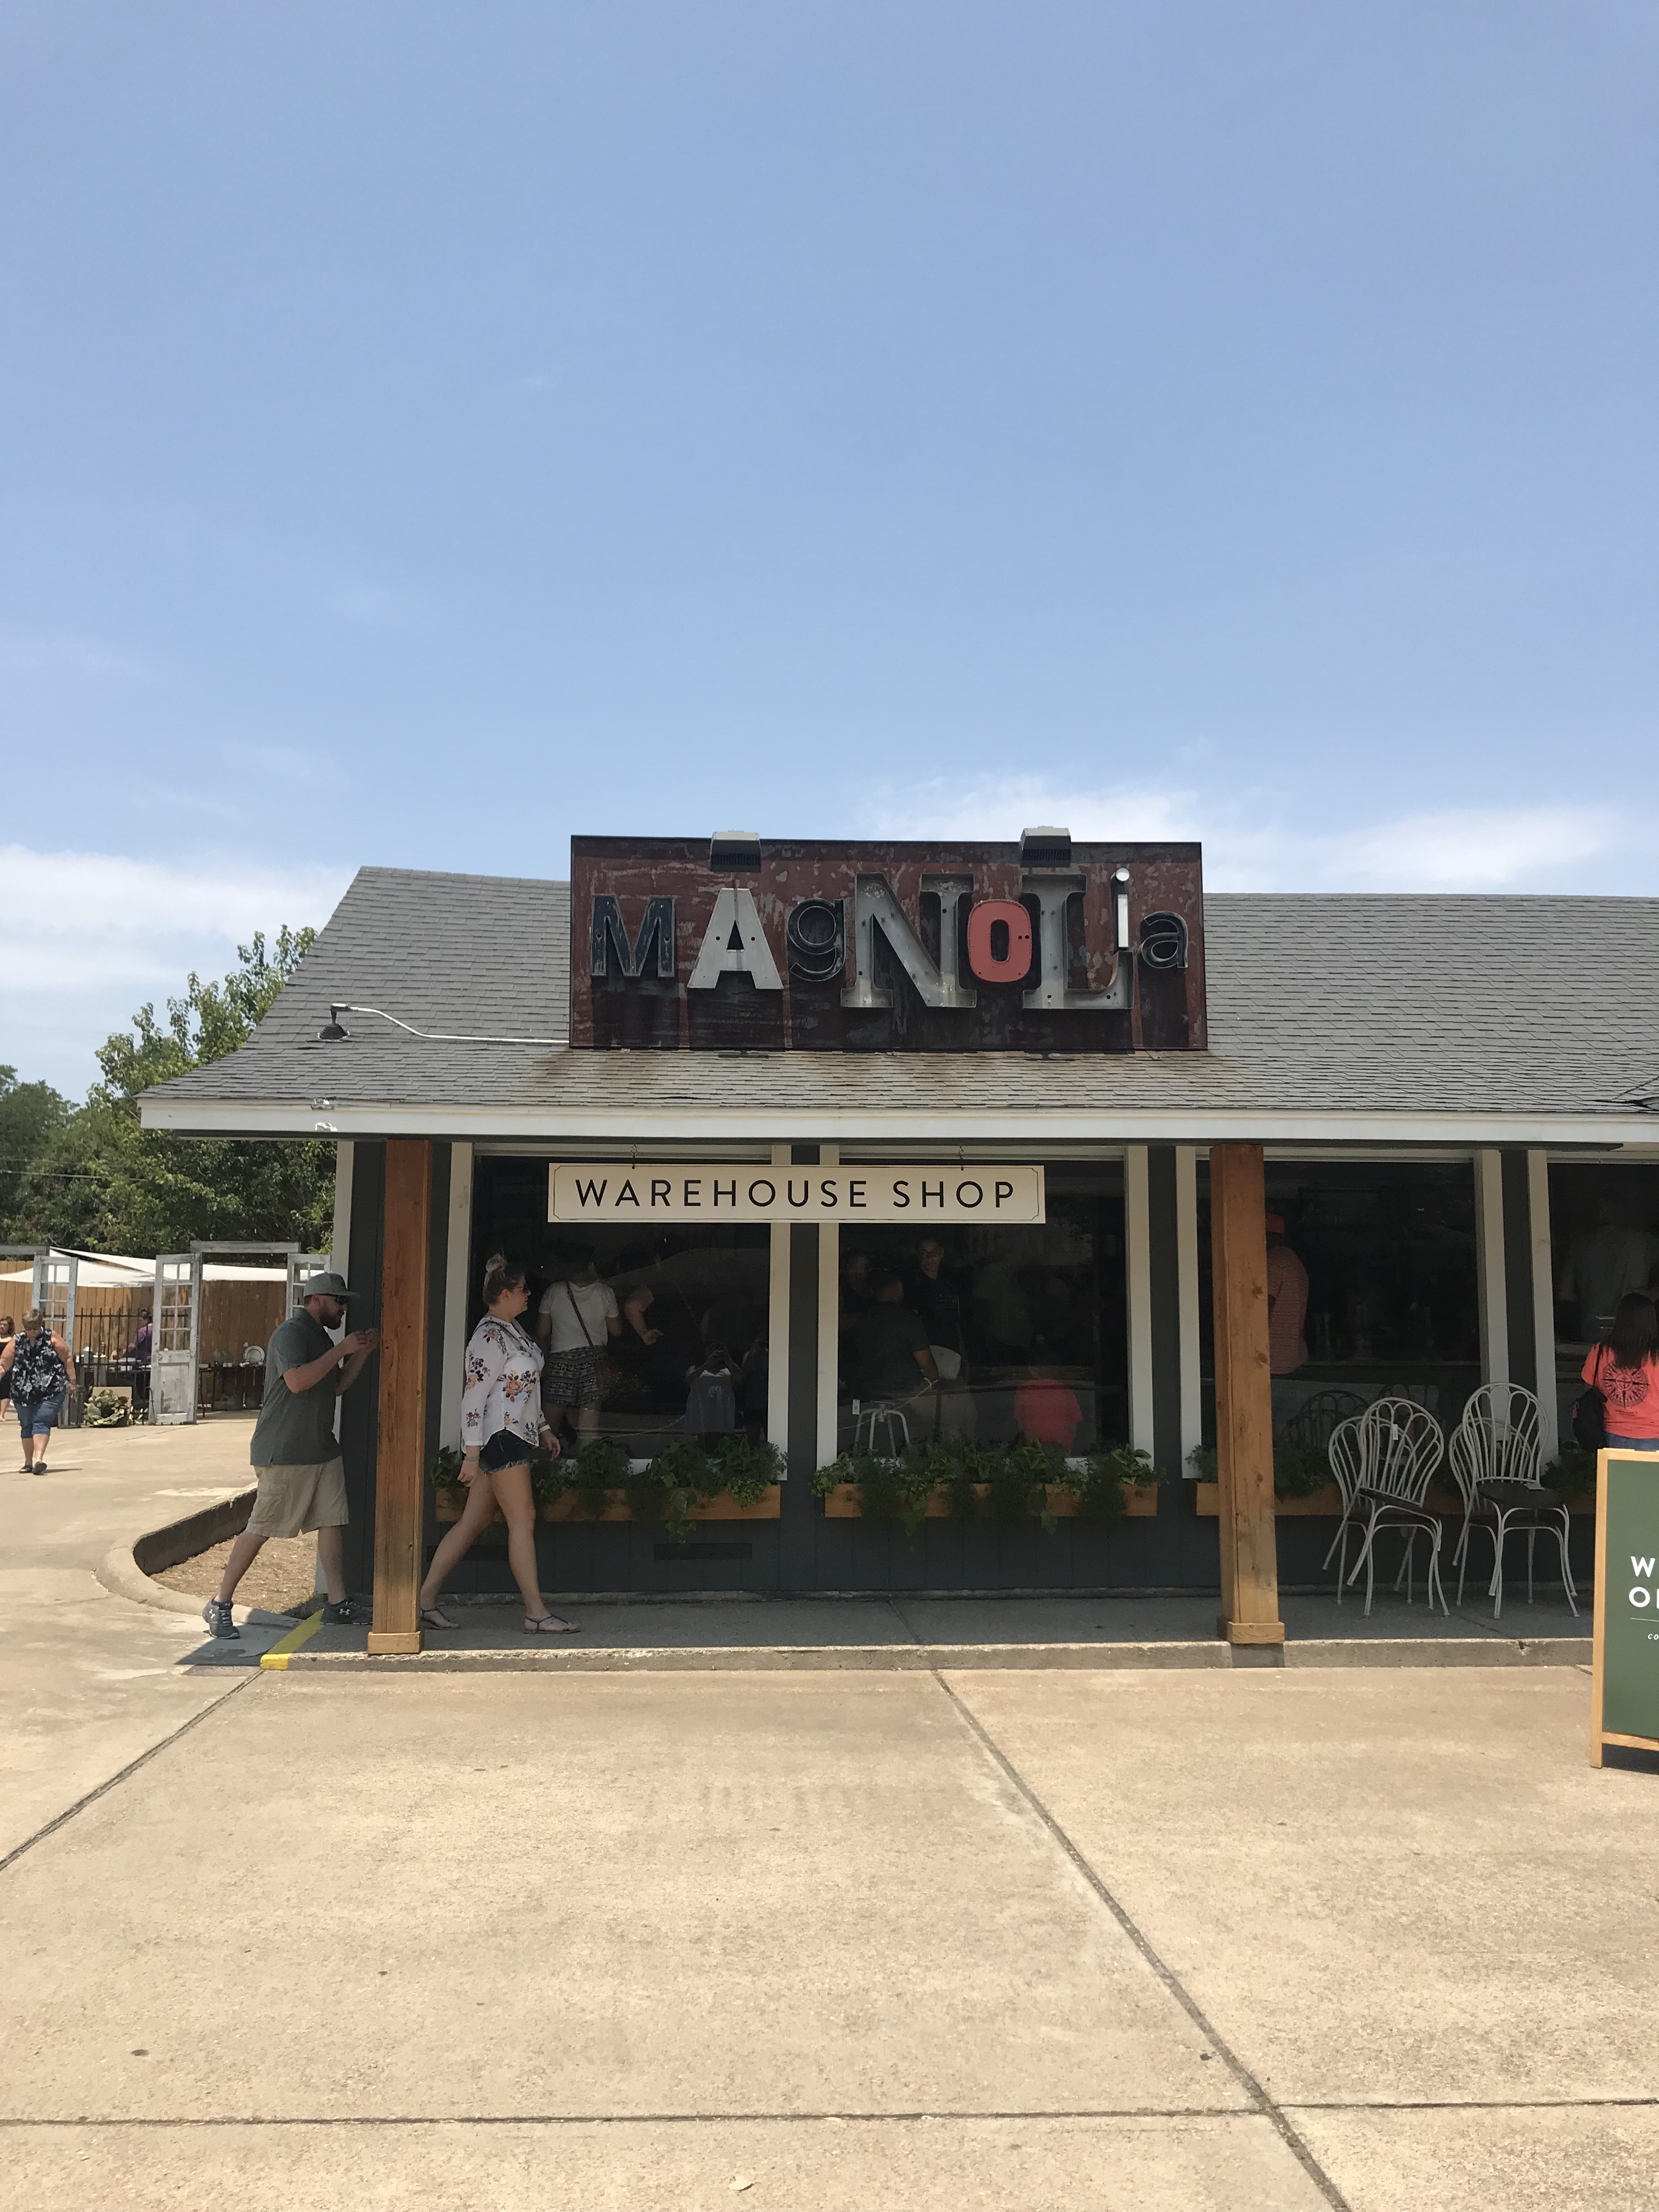 The Best Things To Do In Dallas You'll Want to Do featured by popular San Diego travel blogger, The Brunette & The Beach: Magnolia on the way to Austin